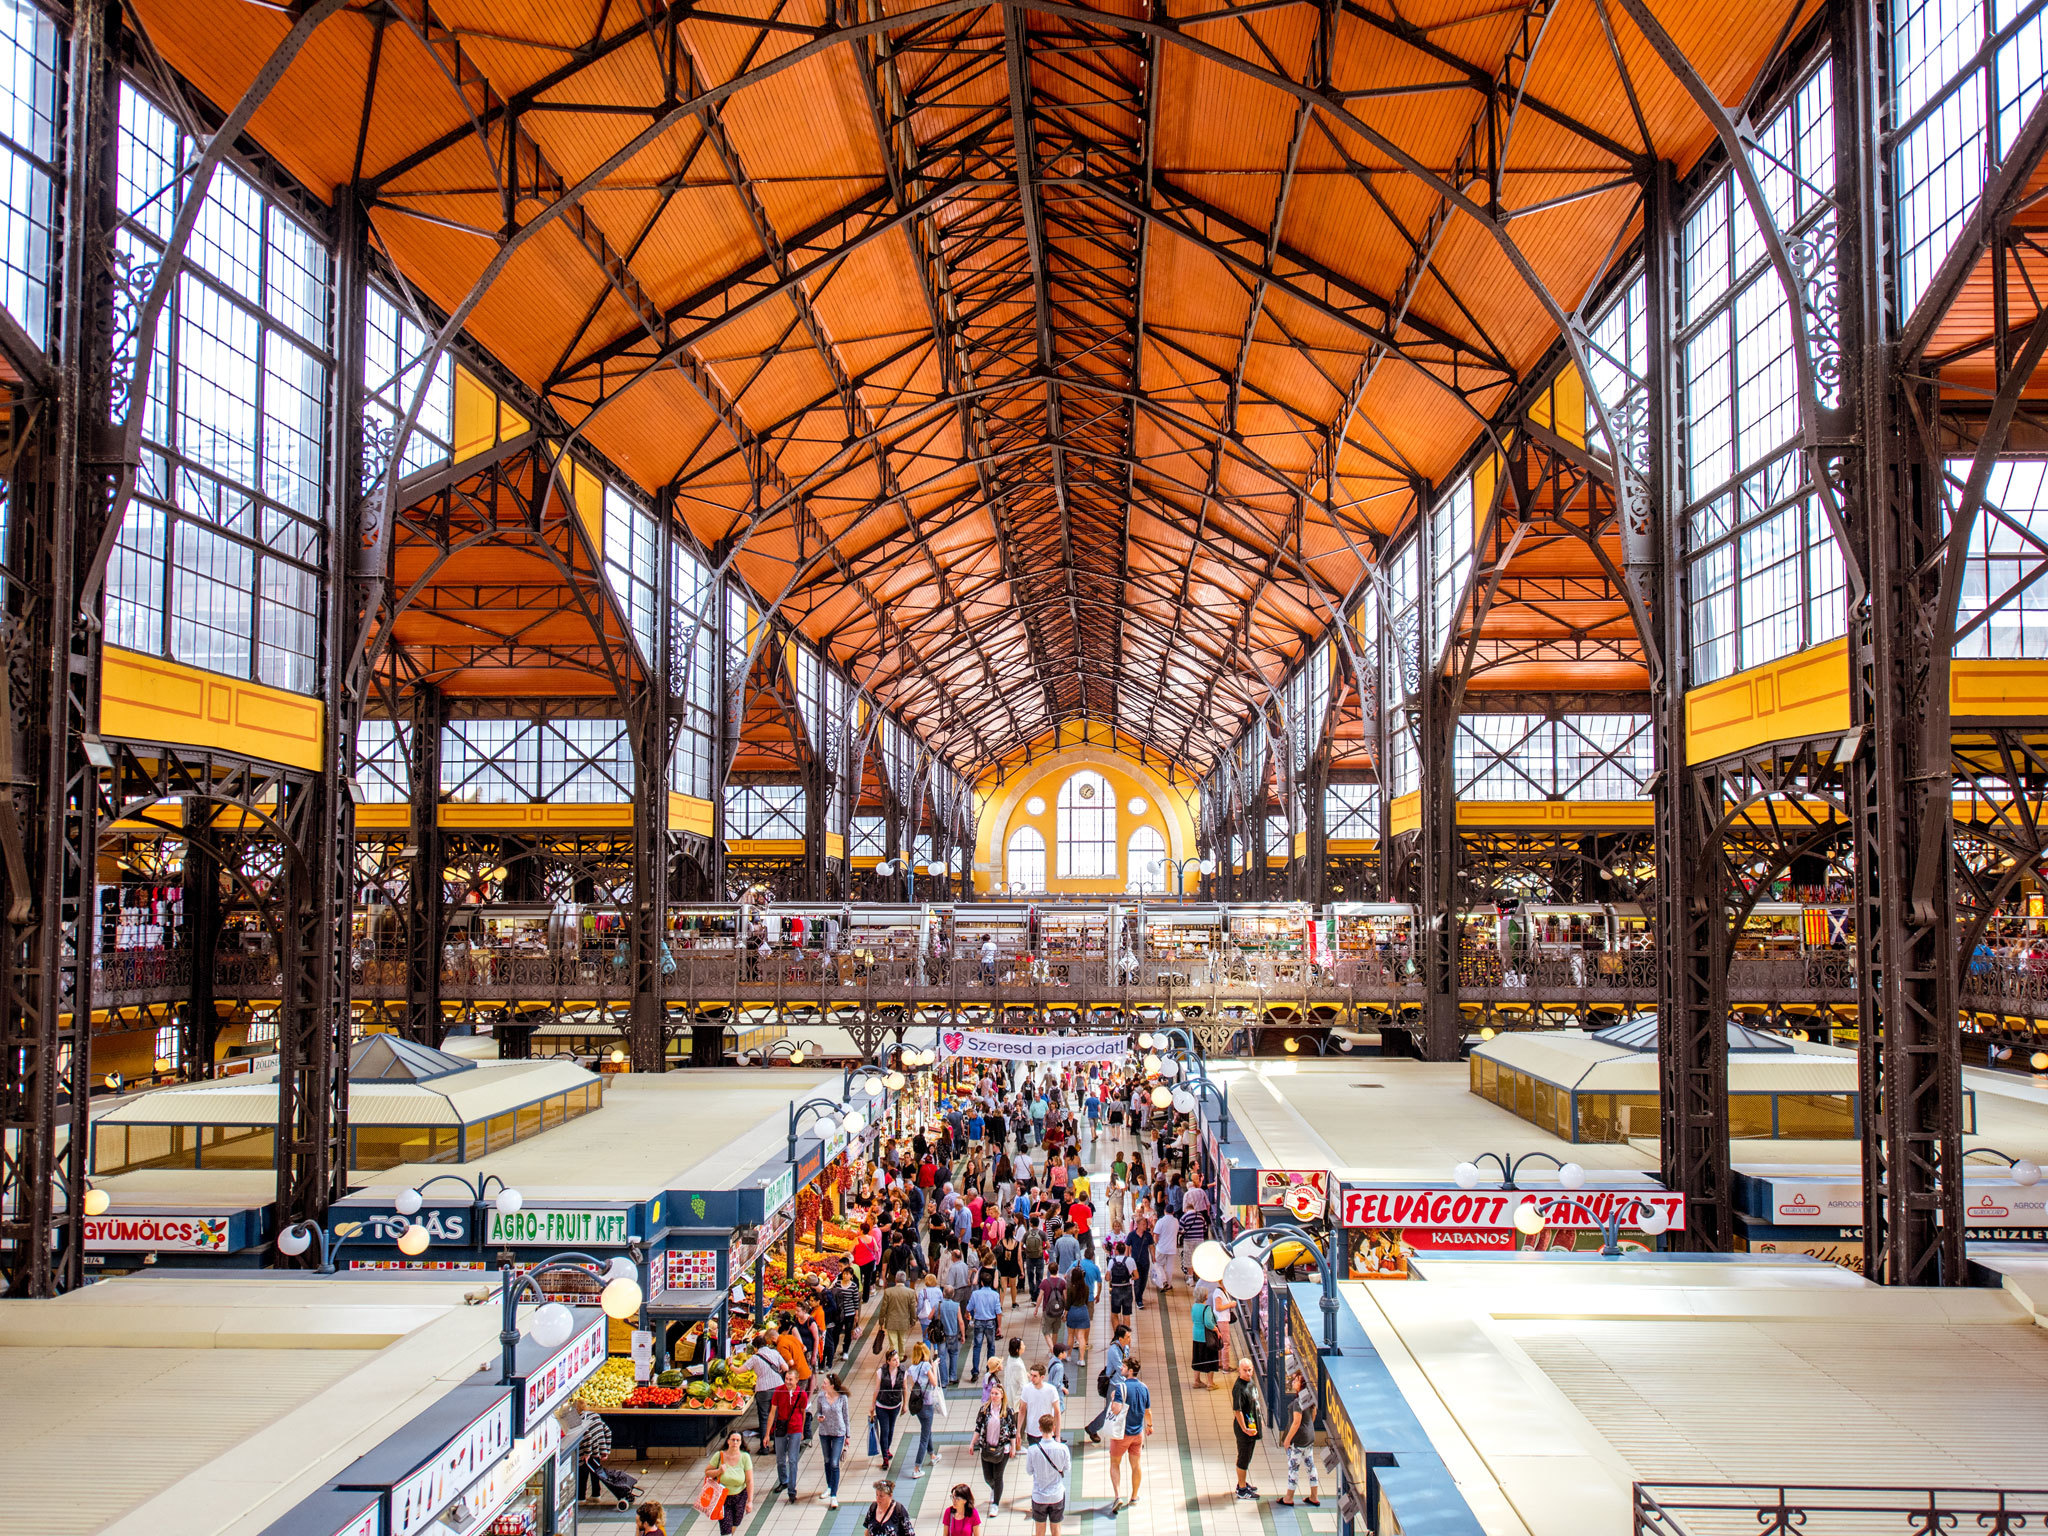 Great Market Hall - Budapest - Hungary